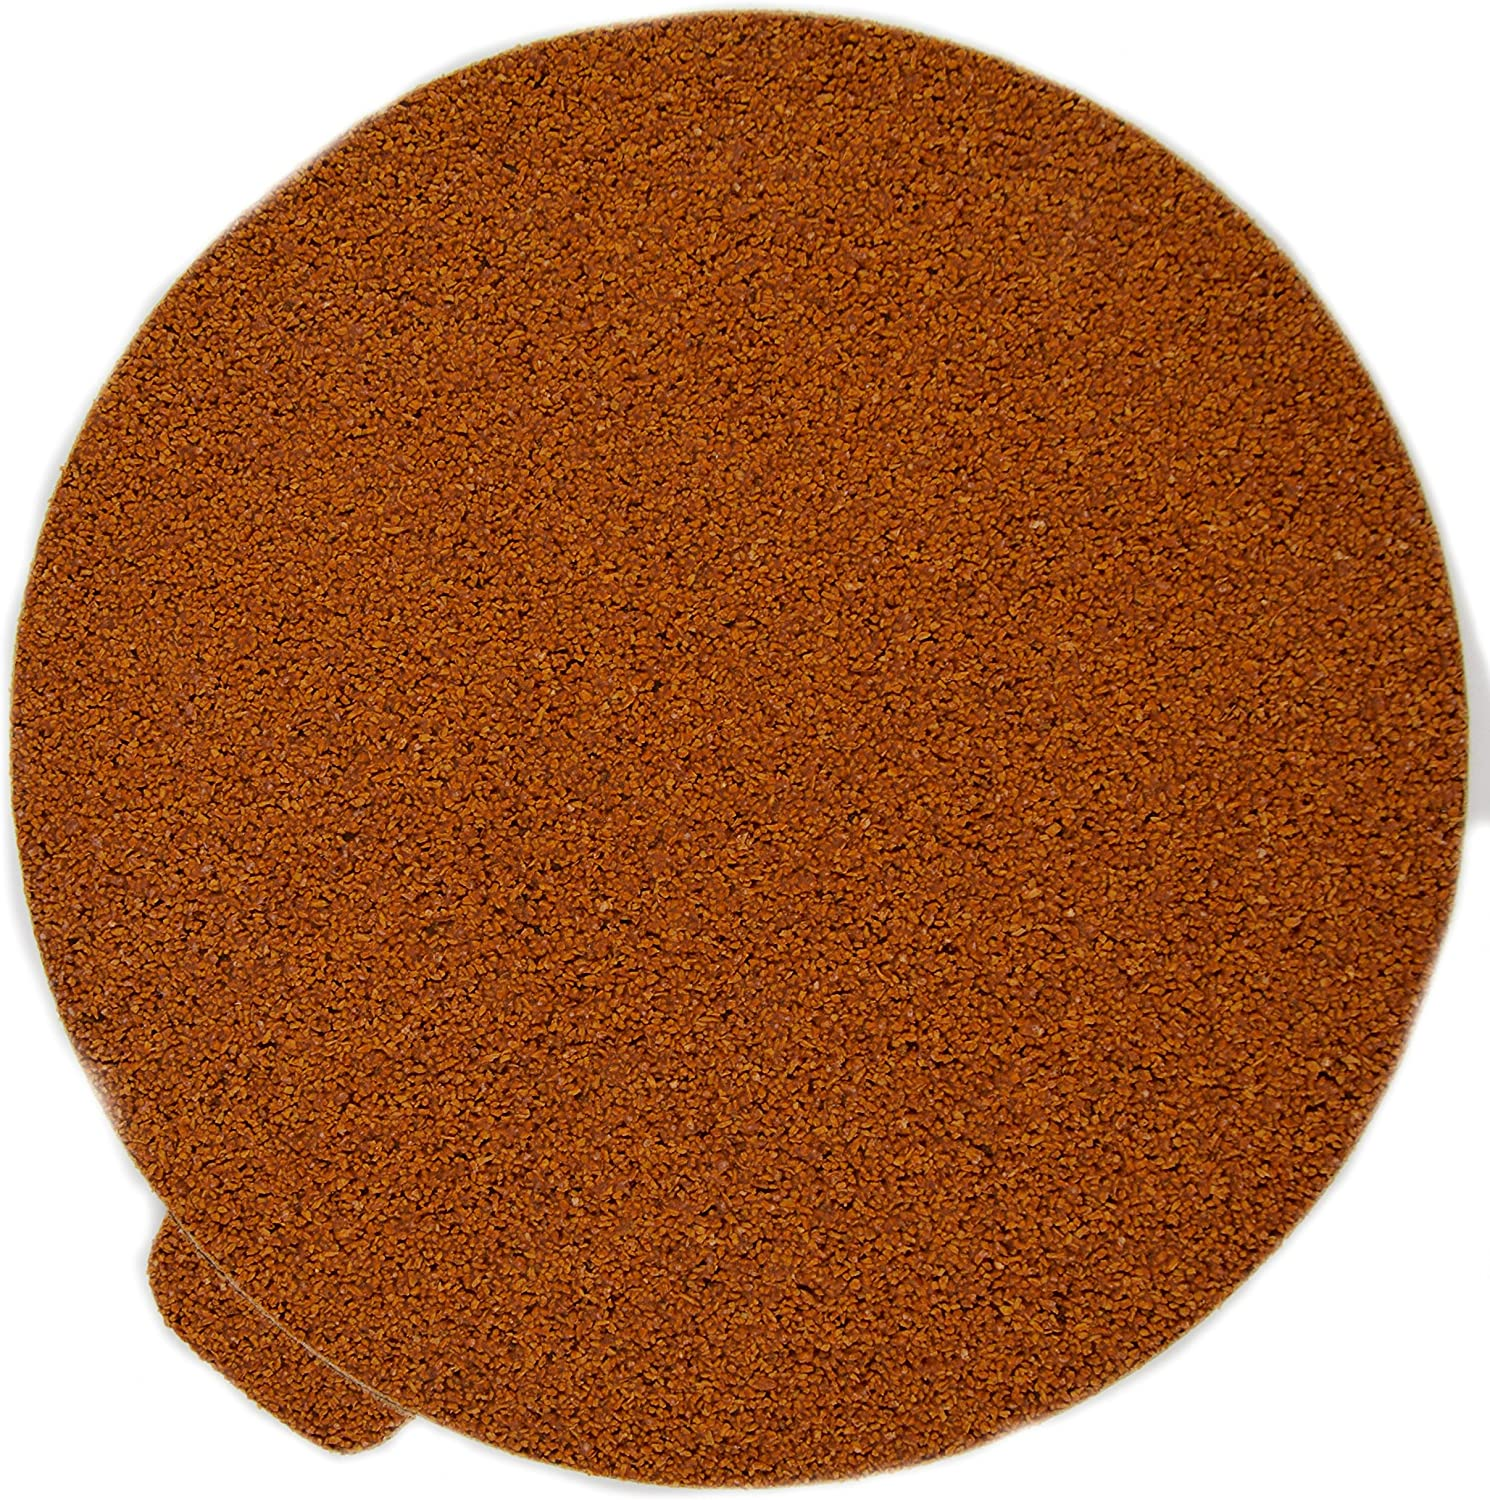 Sungold Abrasives 020051 5 60 Grit Psa Sanding Discs Silicon Carbide Cloth For Stone Pack-50 Glass And Marble